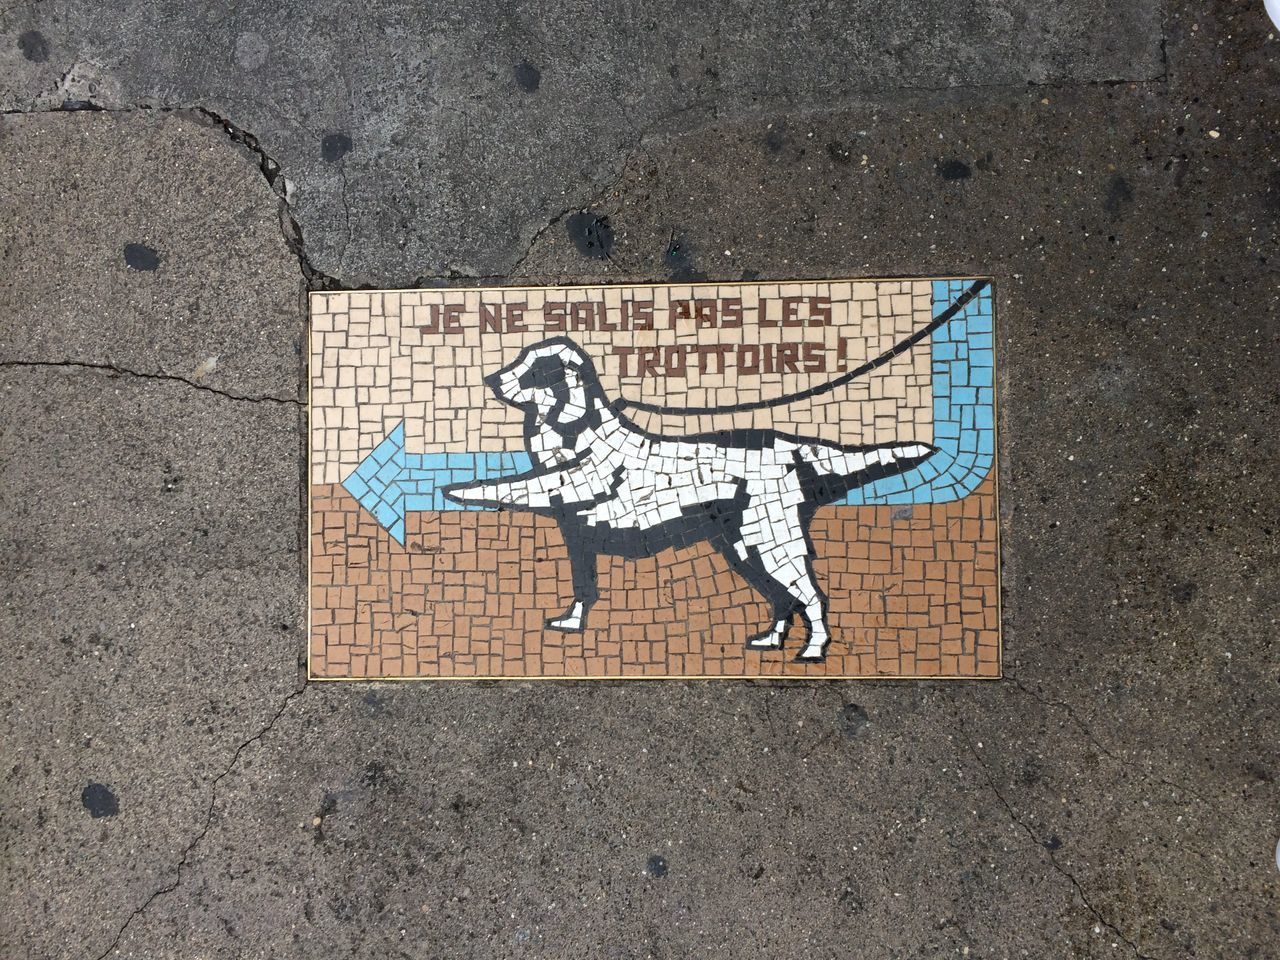 Art Chien Creativity Day Dog Geneve Mosaic Mosaic Art Mosaic Tiles No People Outdoors Street Art Trottoir Urban Urban Lifestyle